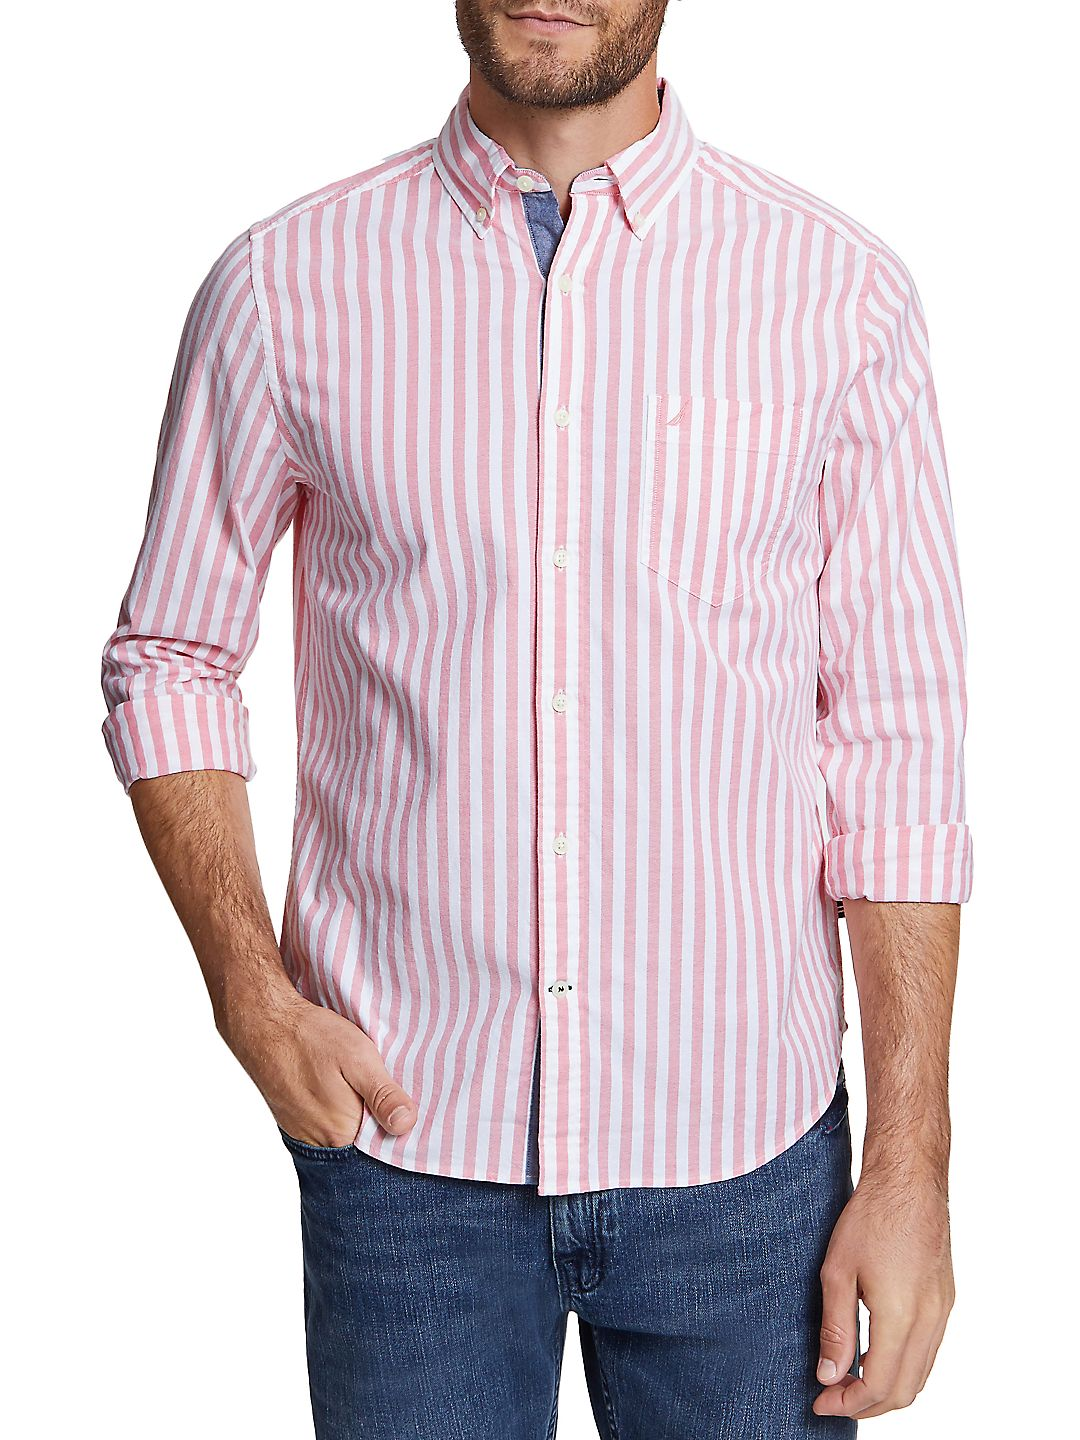 Stripe-Print Classic-Fit Button-Down Shirt